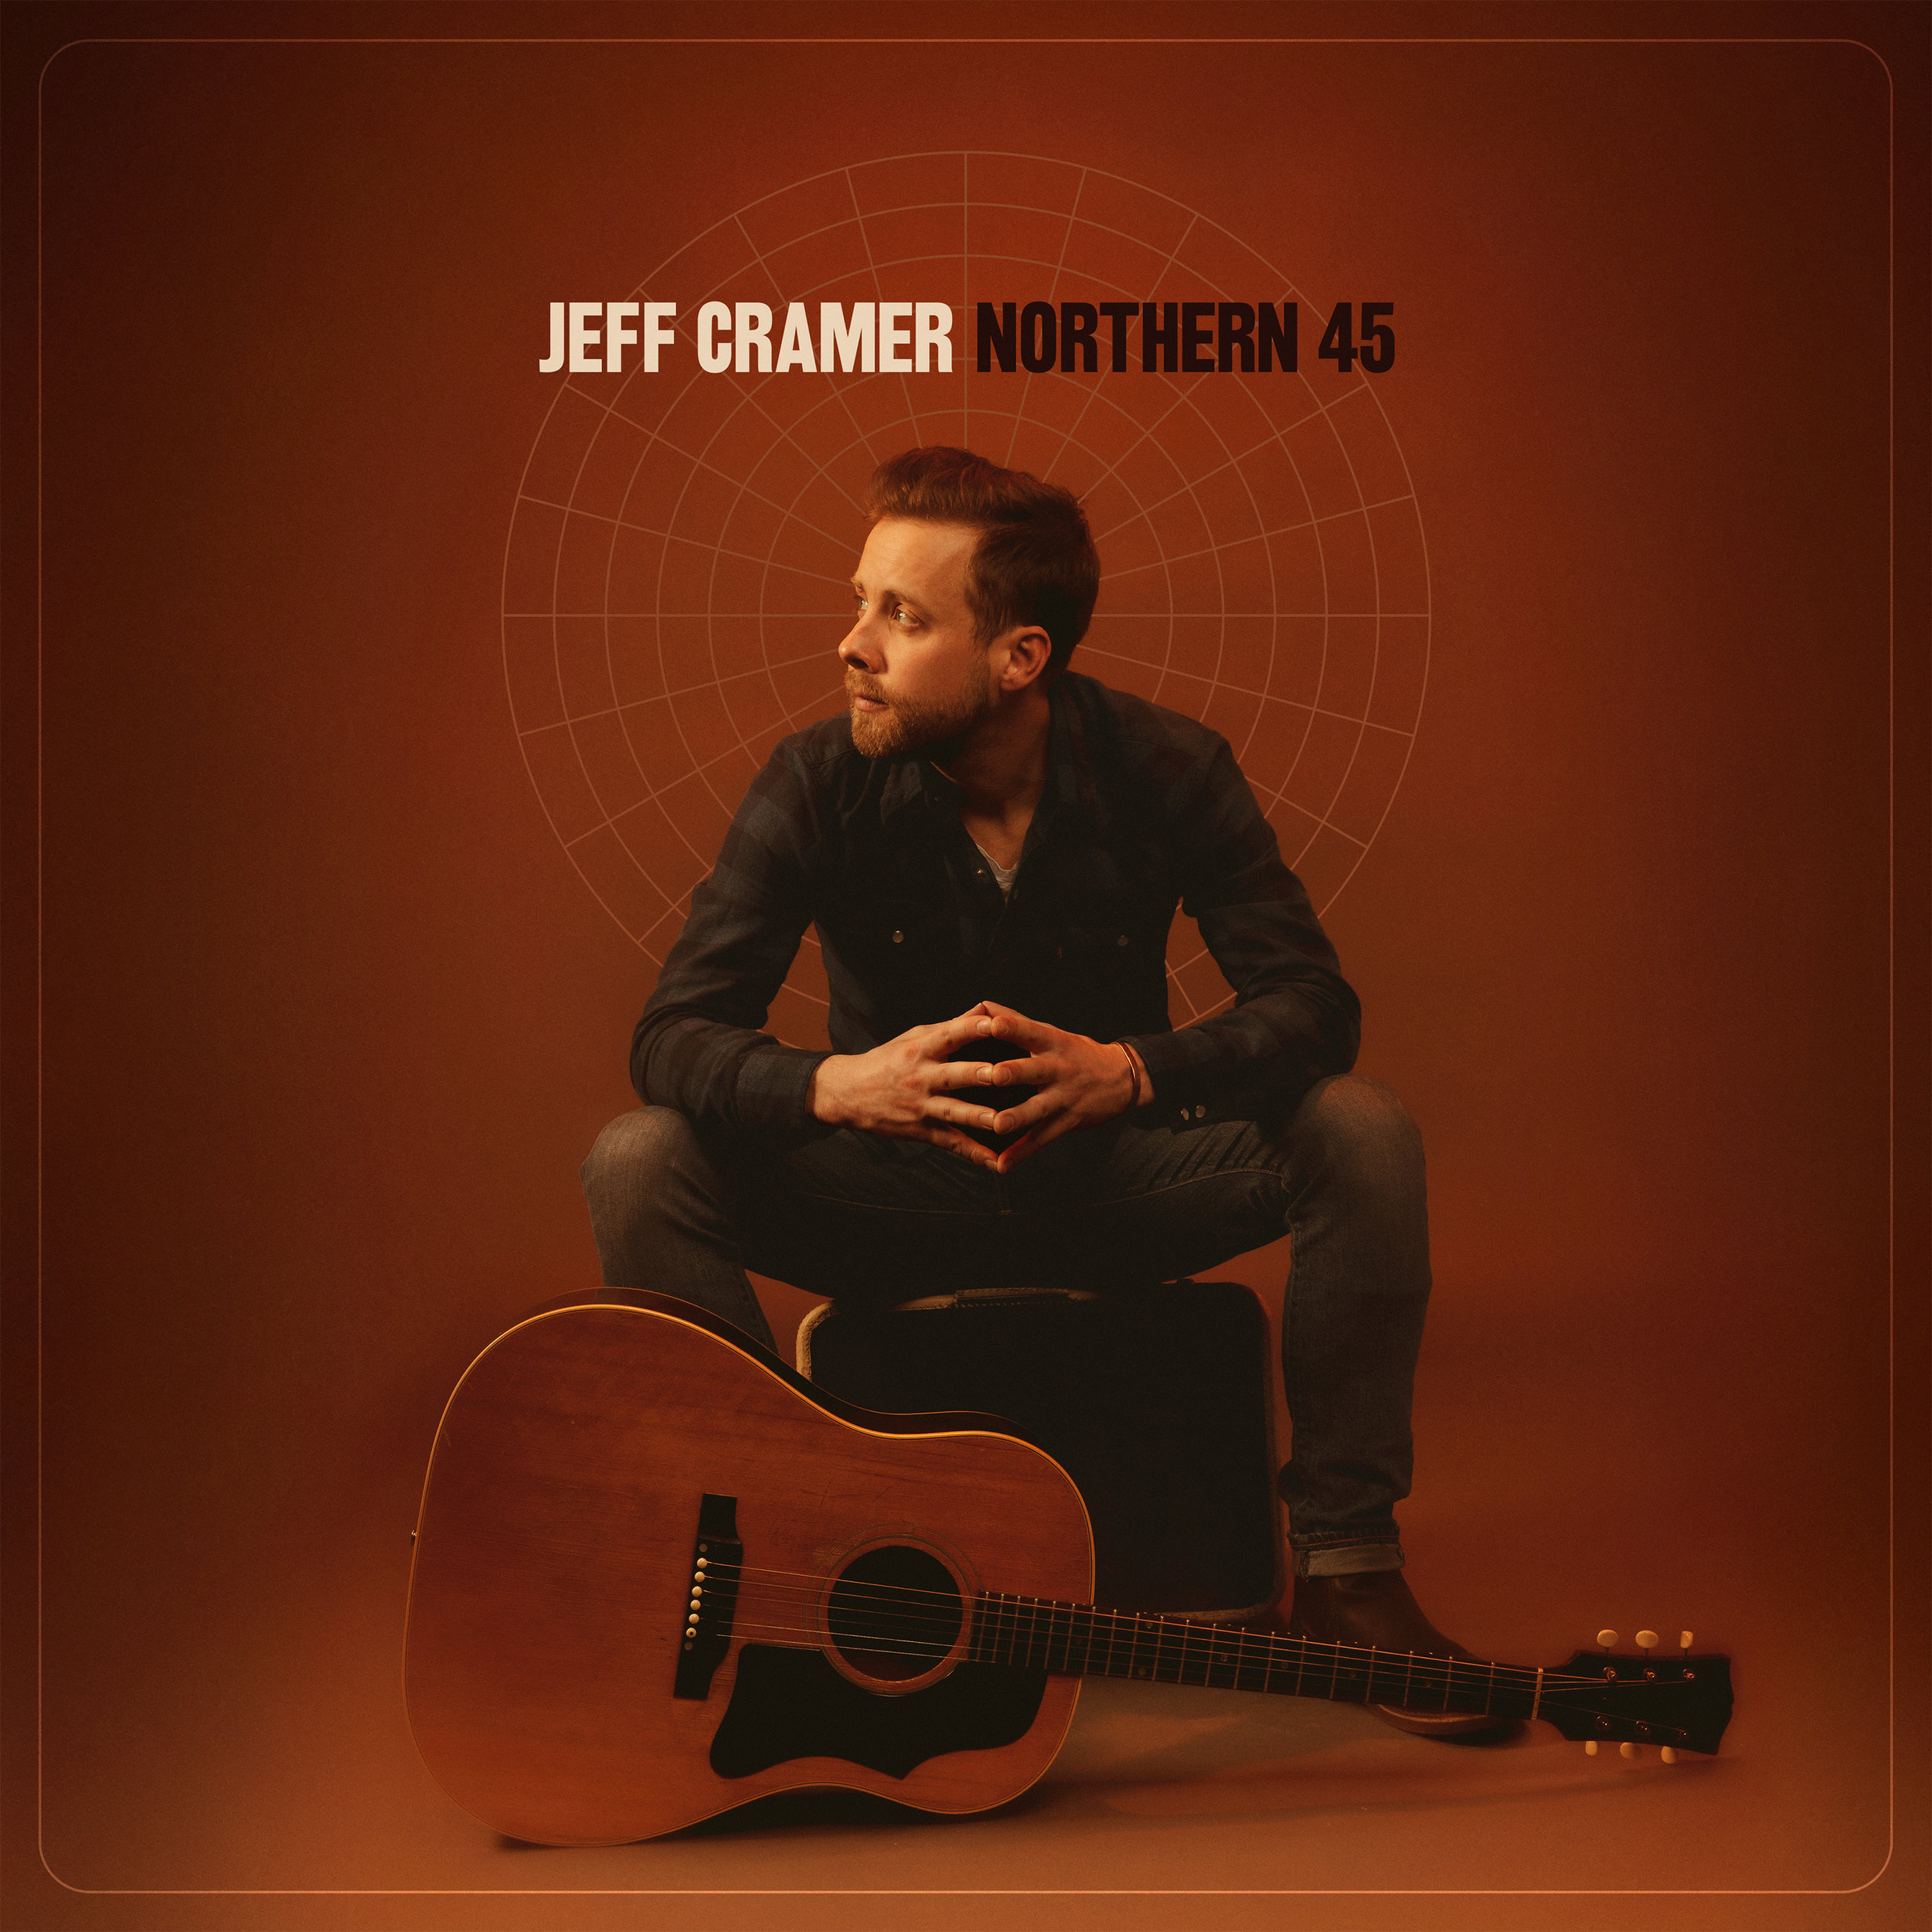 JeffCramer_Northern45_Cover.jpg